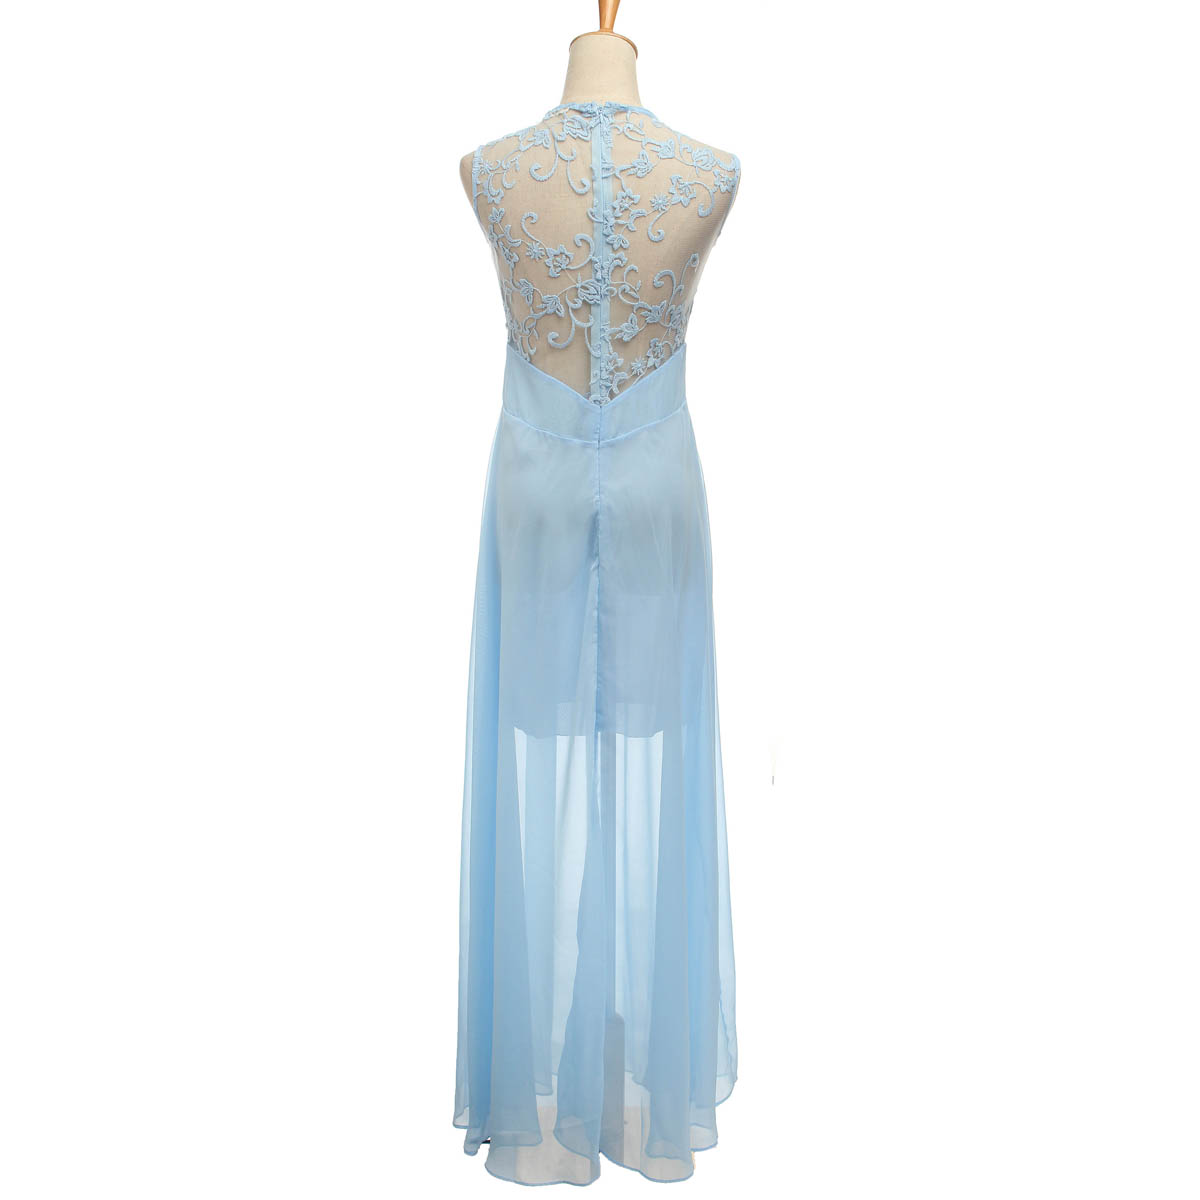 Buy bridesmaid dresses lace long formal chiffon party ball for Wedding dresses chiffon lace